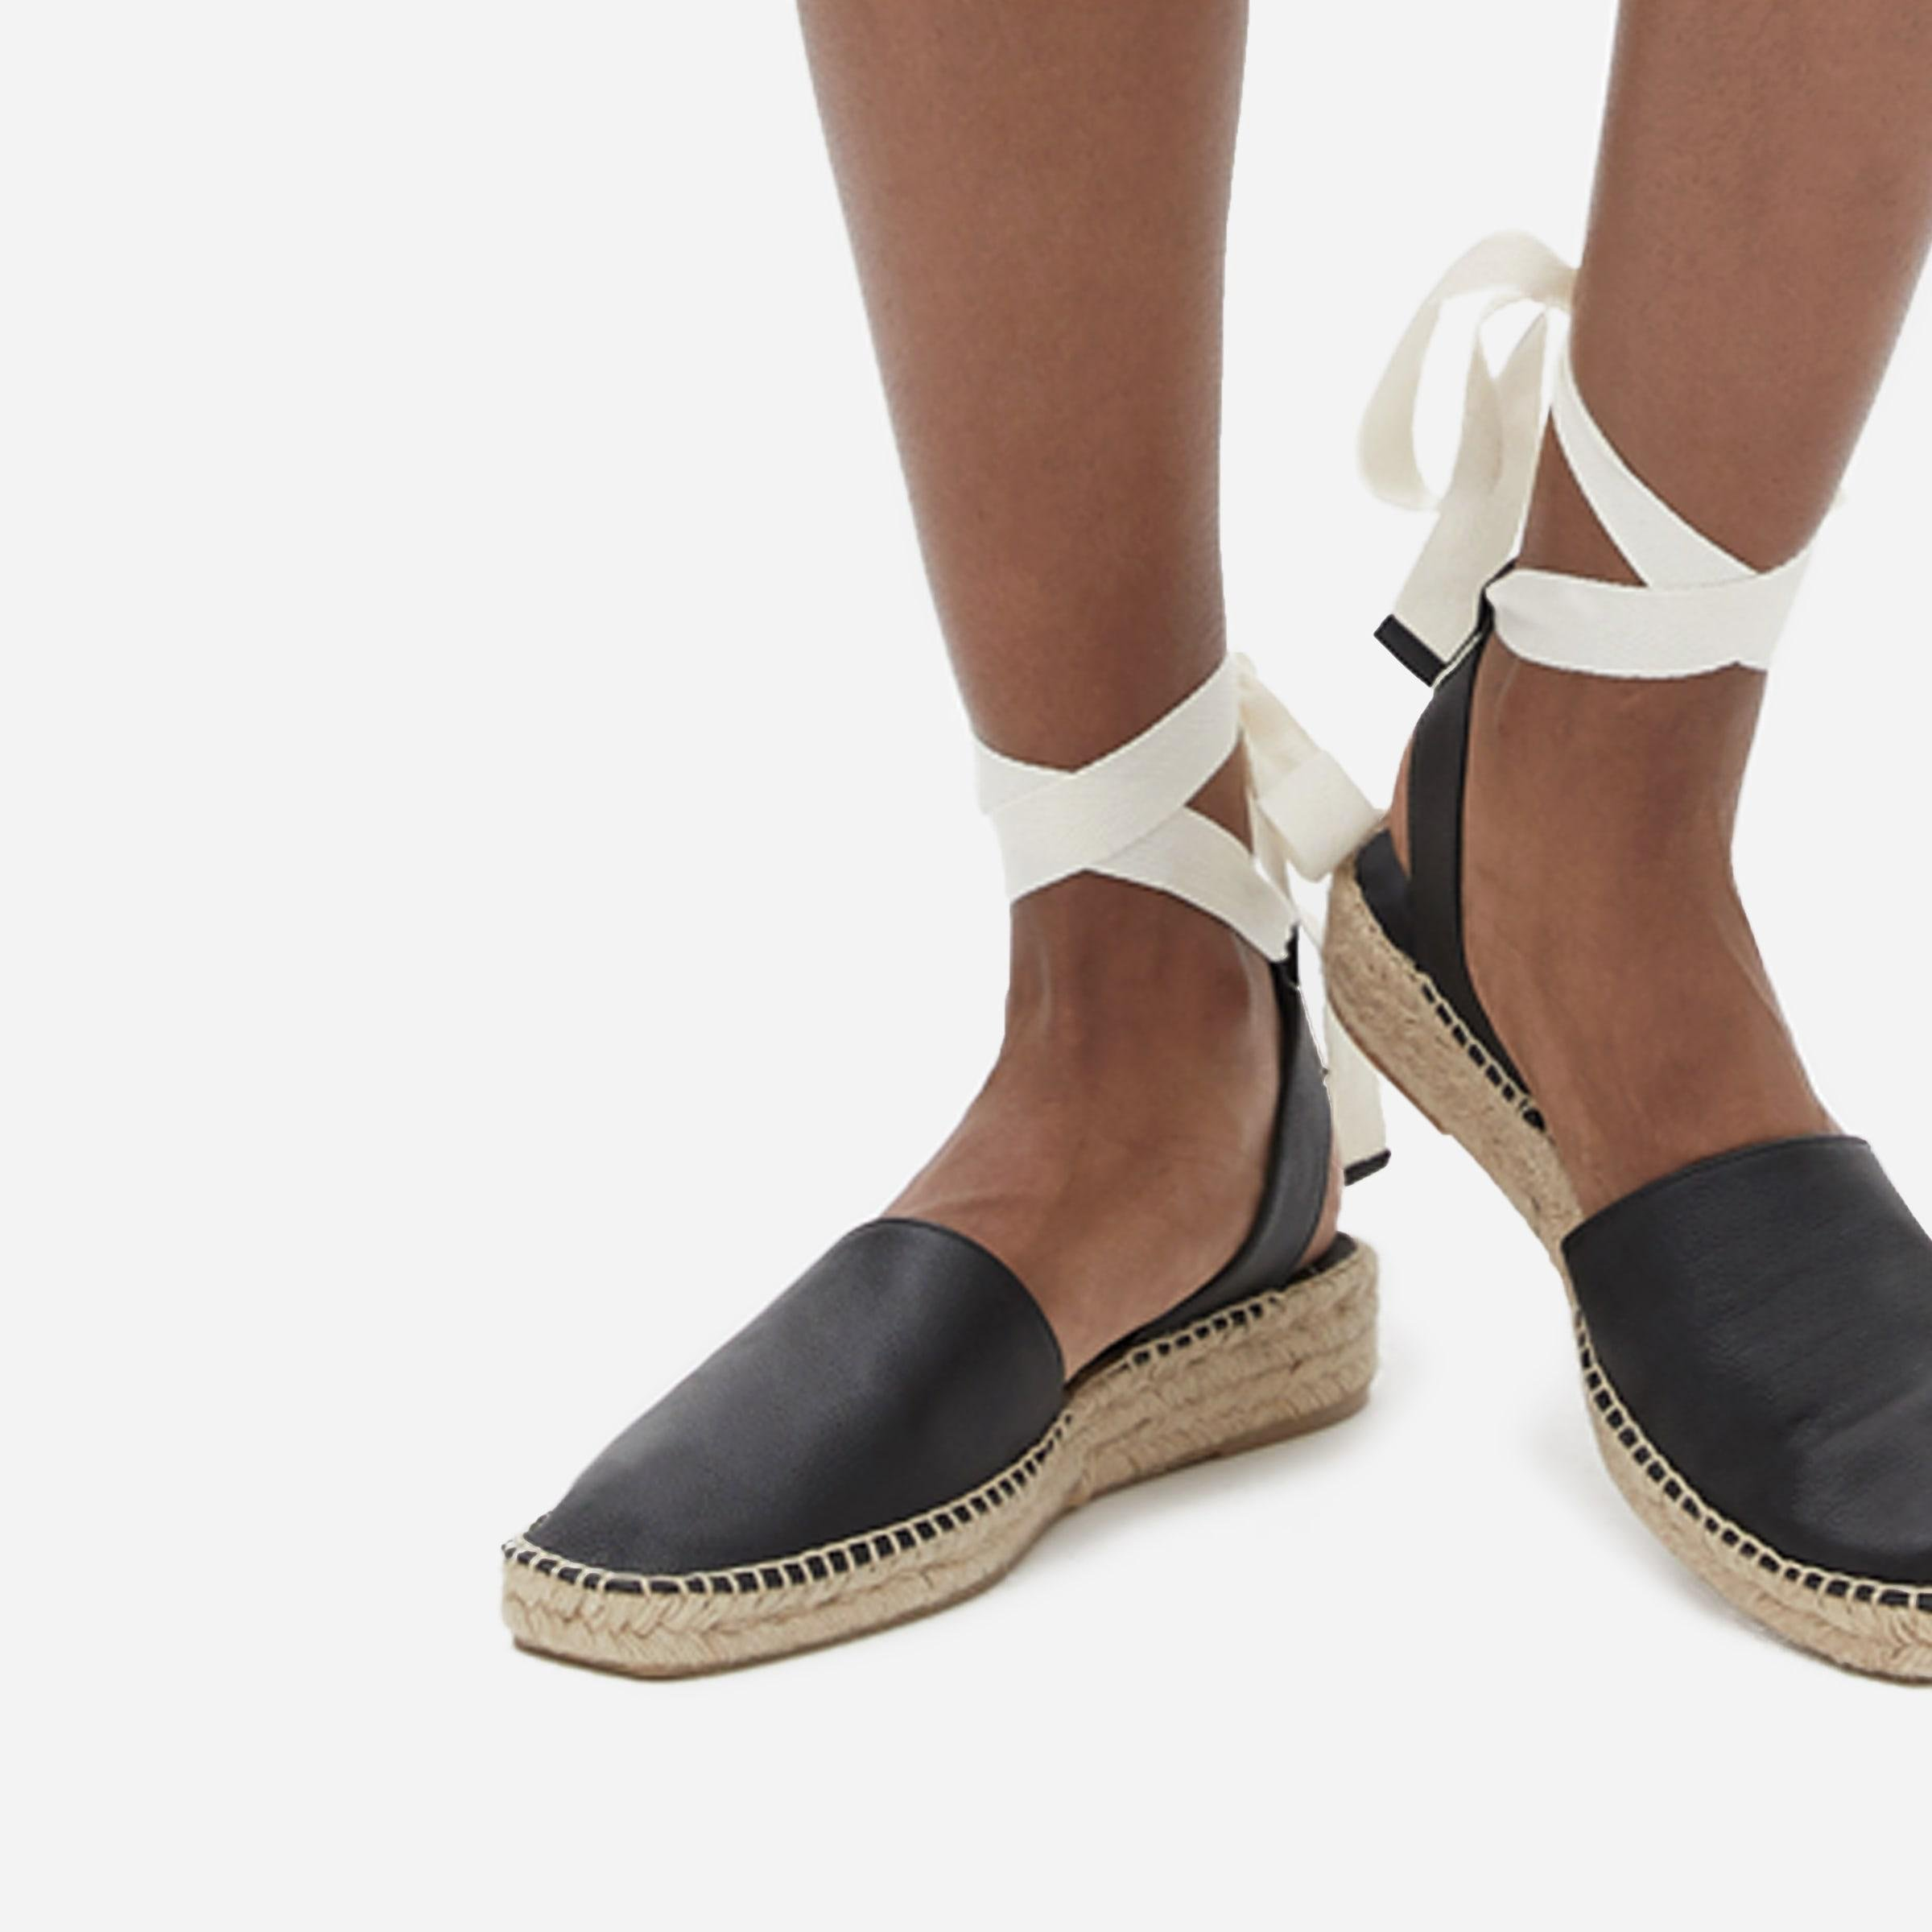 The D'orsay Espadrille 3